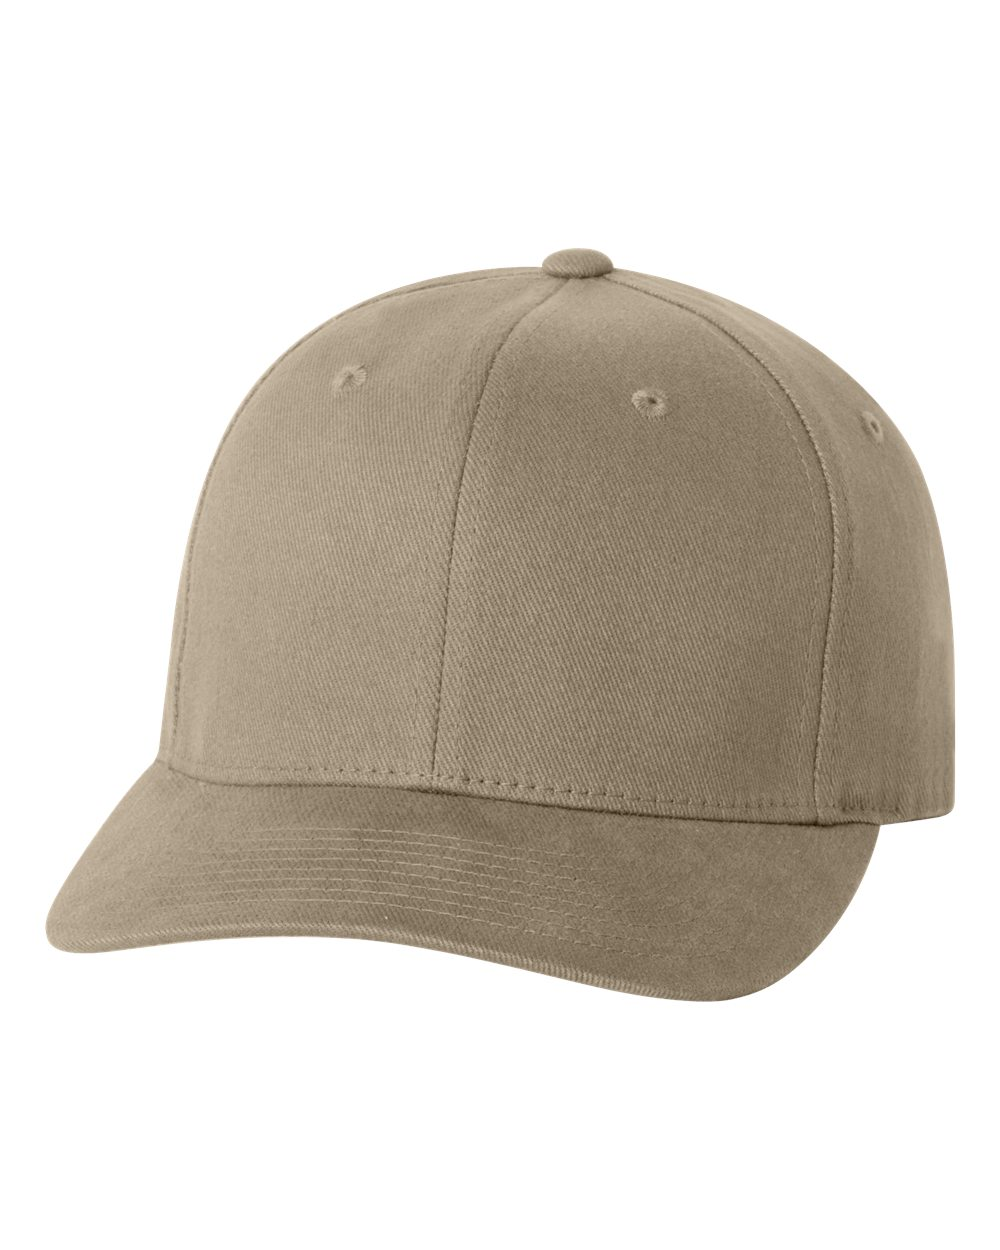 Flexfit 6377 - Brushed Twill Cap